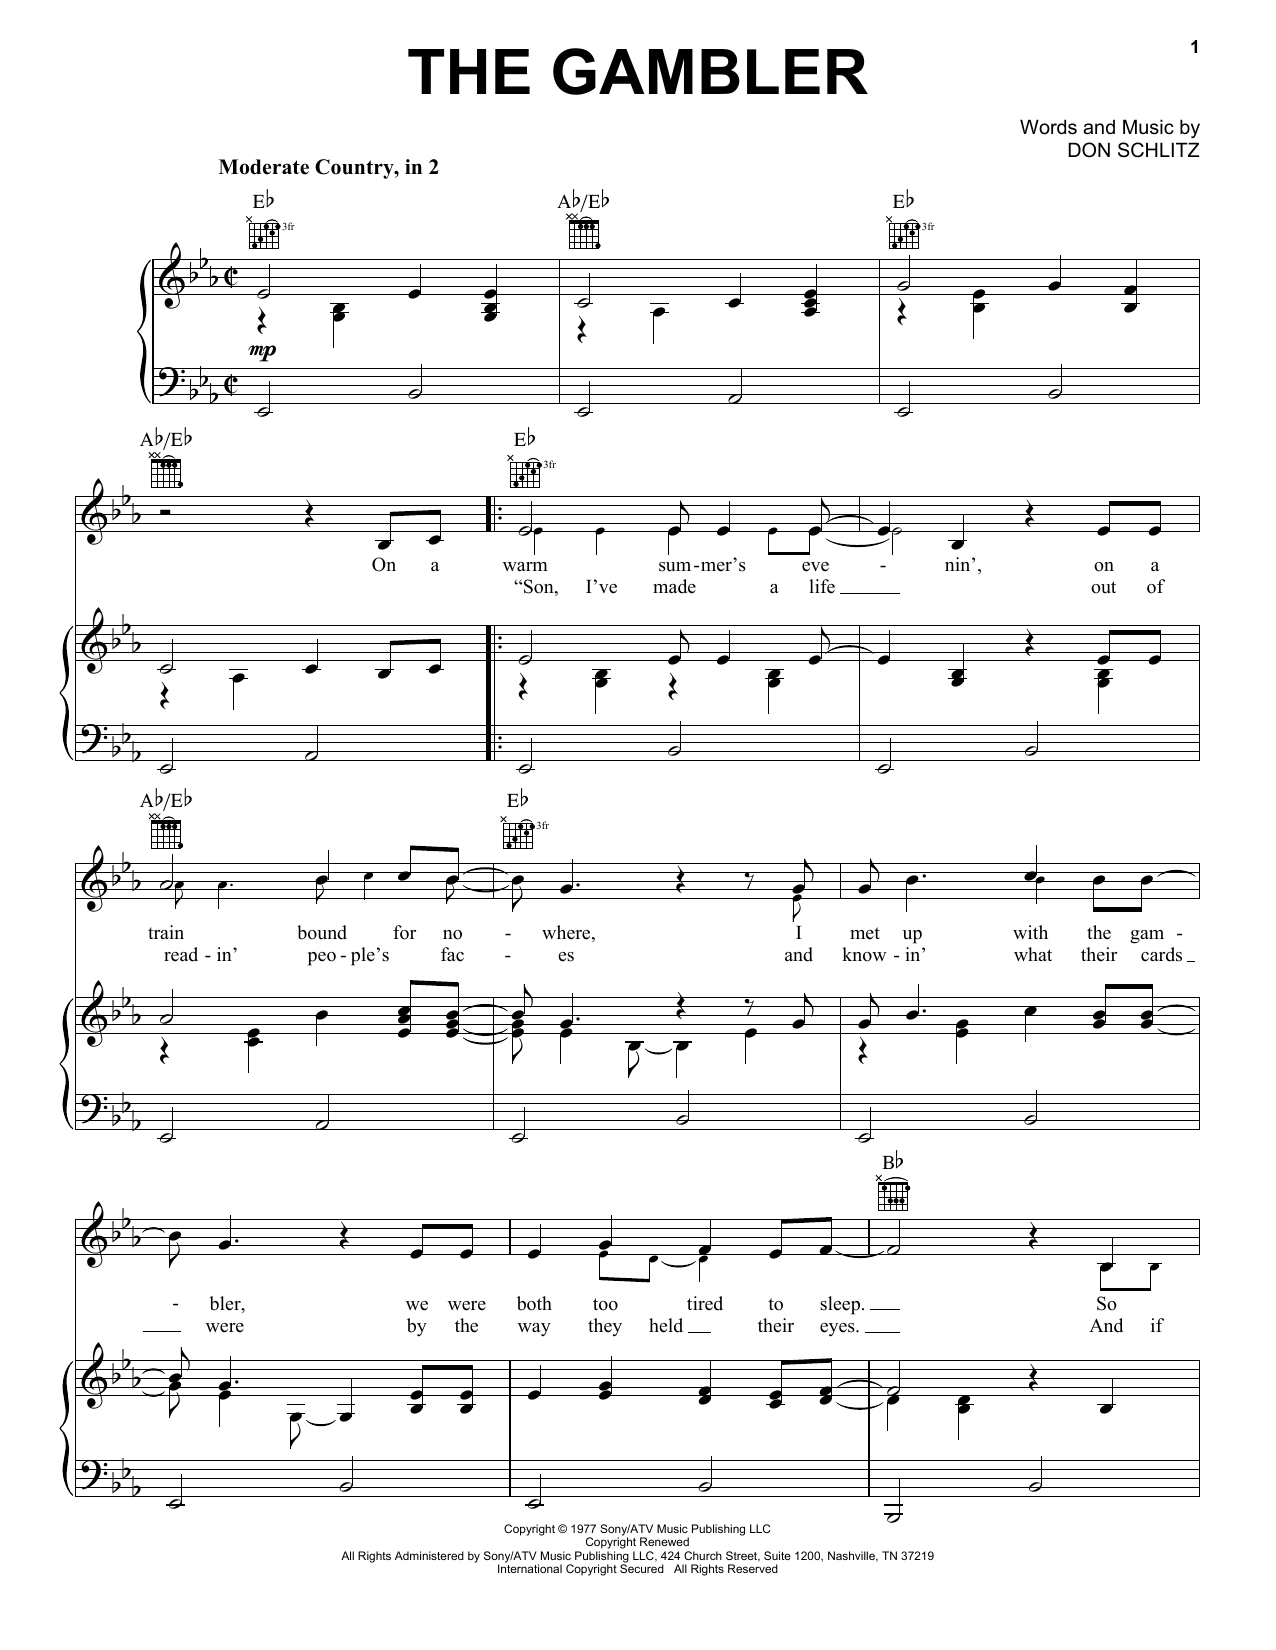 Kenny Rogers The Gambler Sheet Music, Notes & Chords